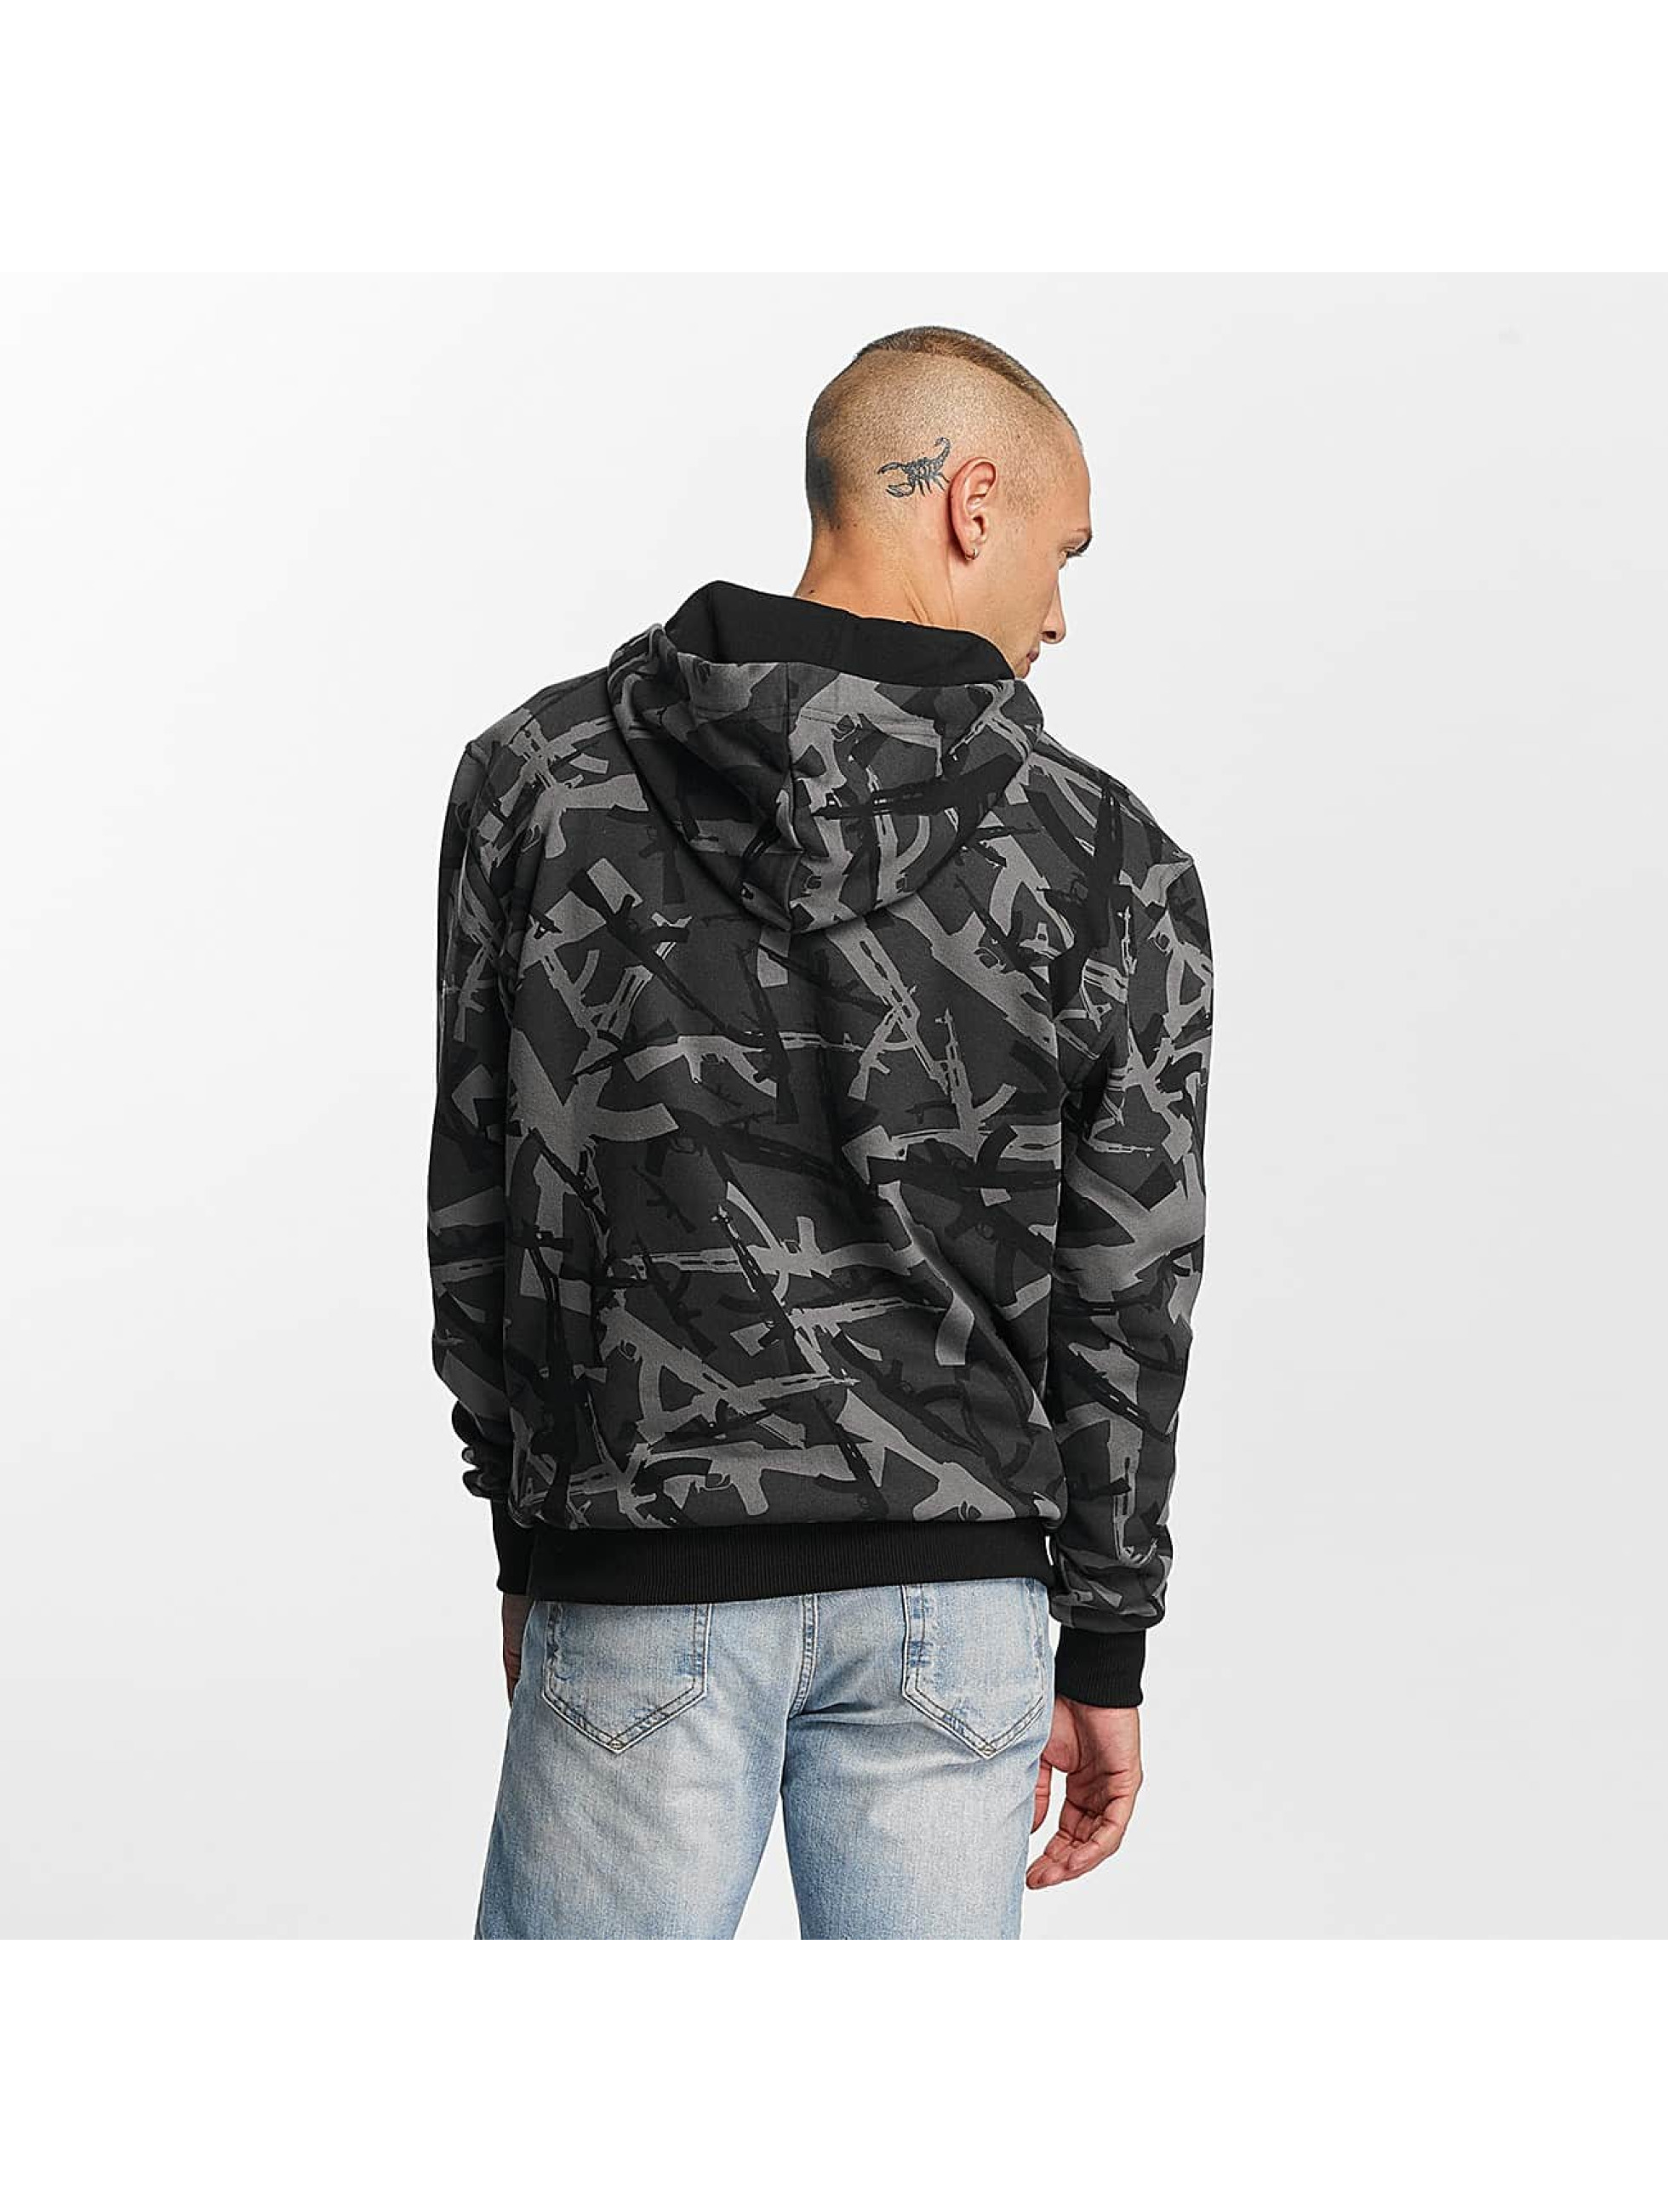 Pusher Apparel Hoodies AK Camo camouflage